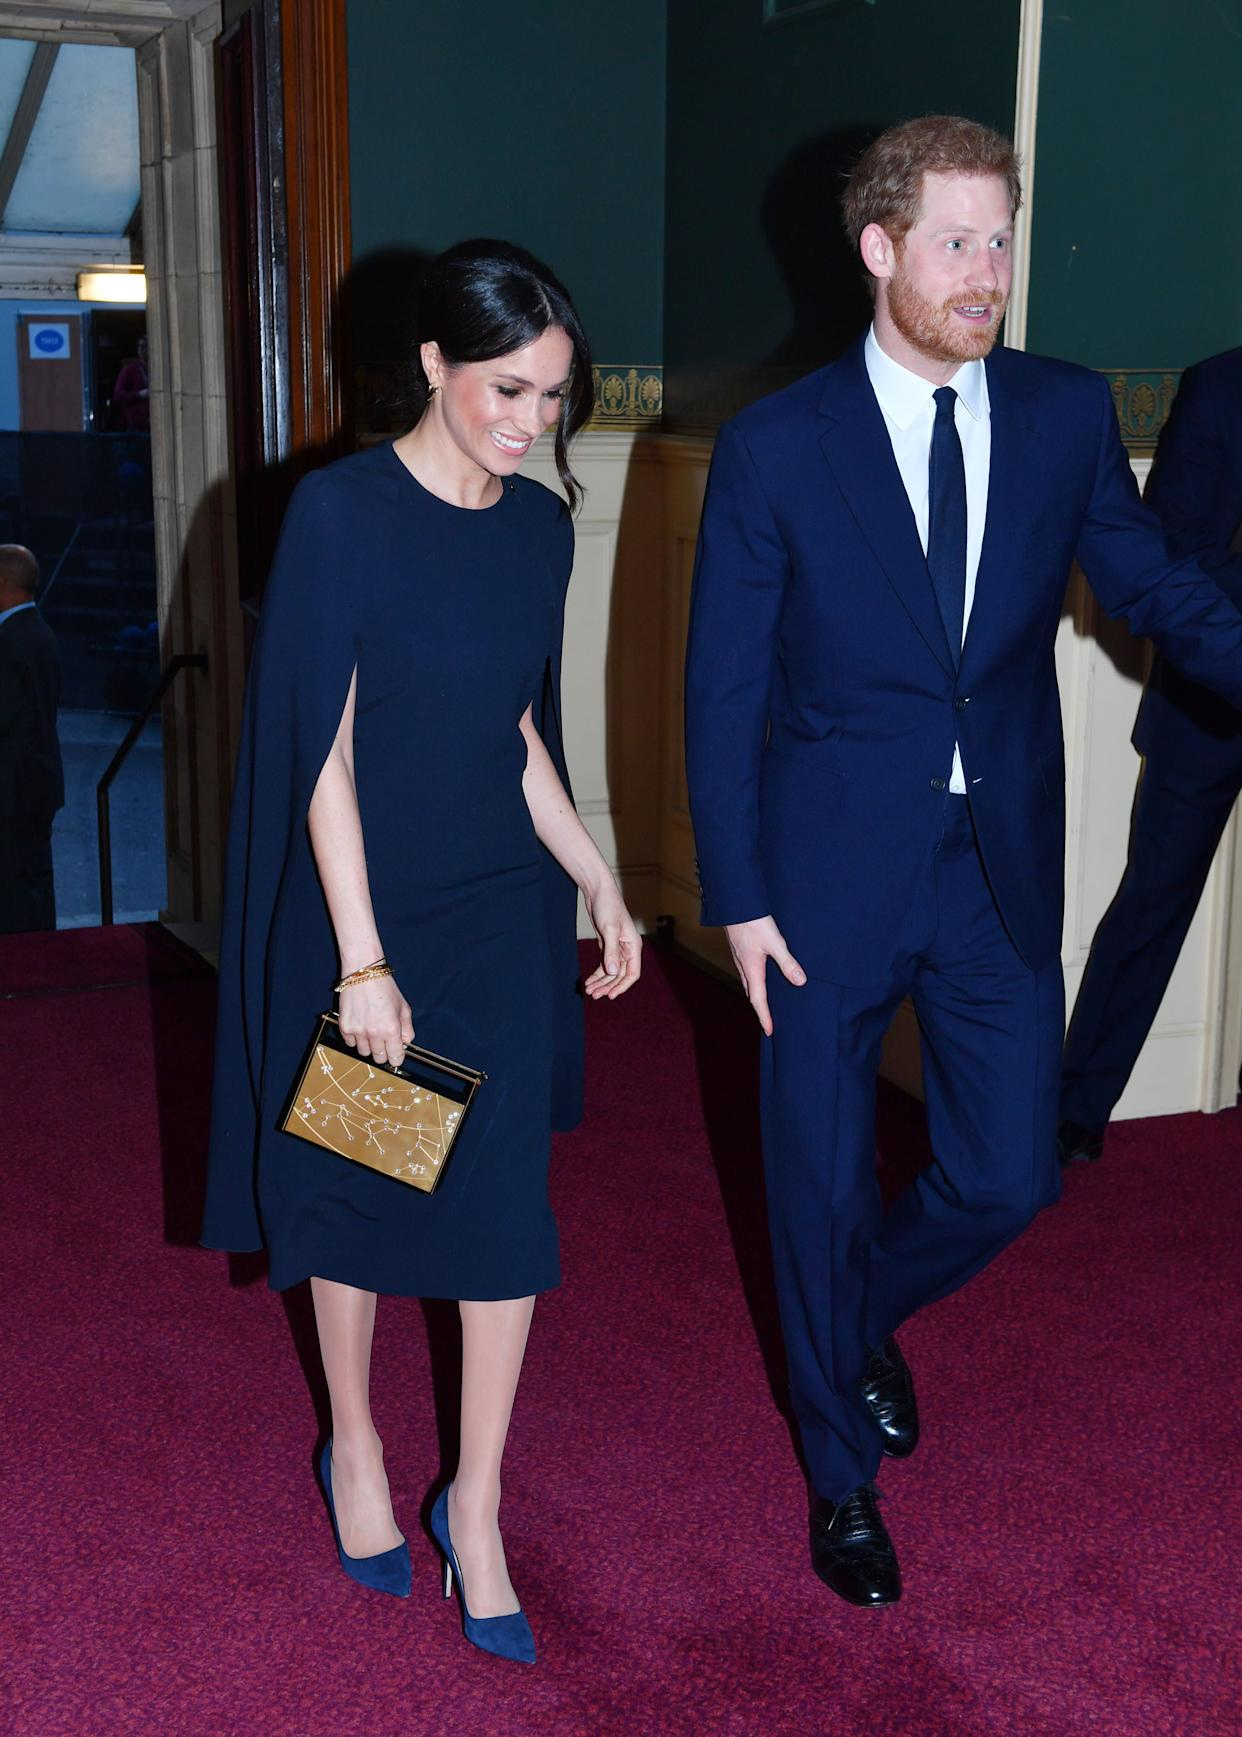 The Duke and Duchess of Sussex arrive at Royal Albert Hall to attend a star-studded concert to celebrate the queen's 92nd birthday on April 21 in London.